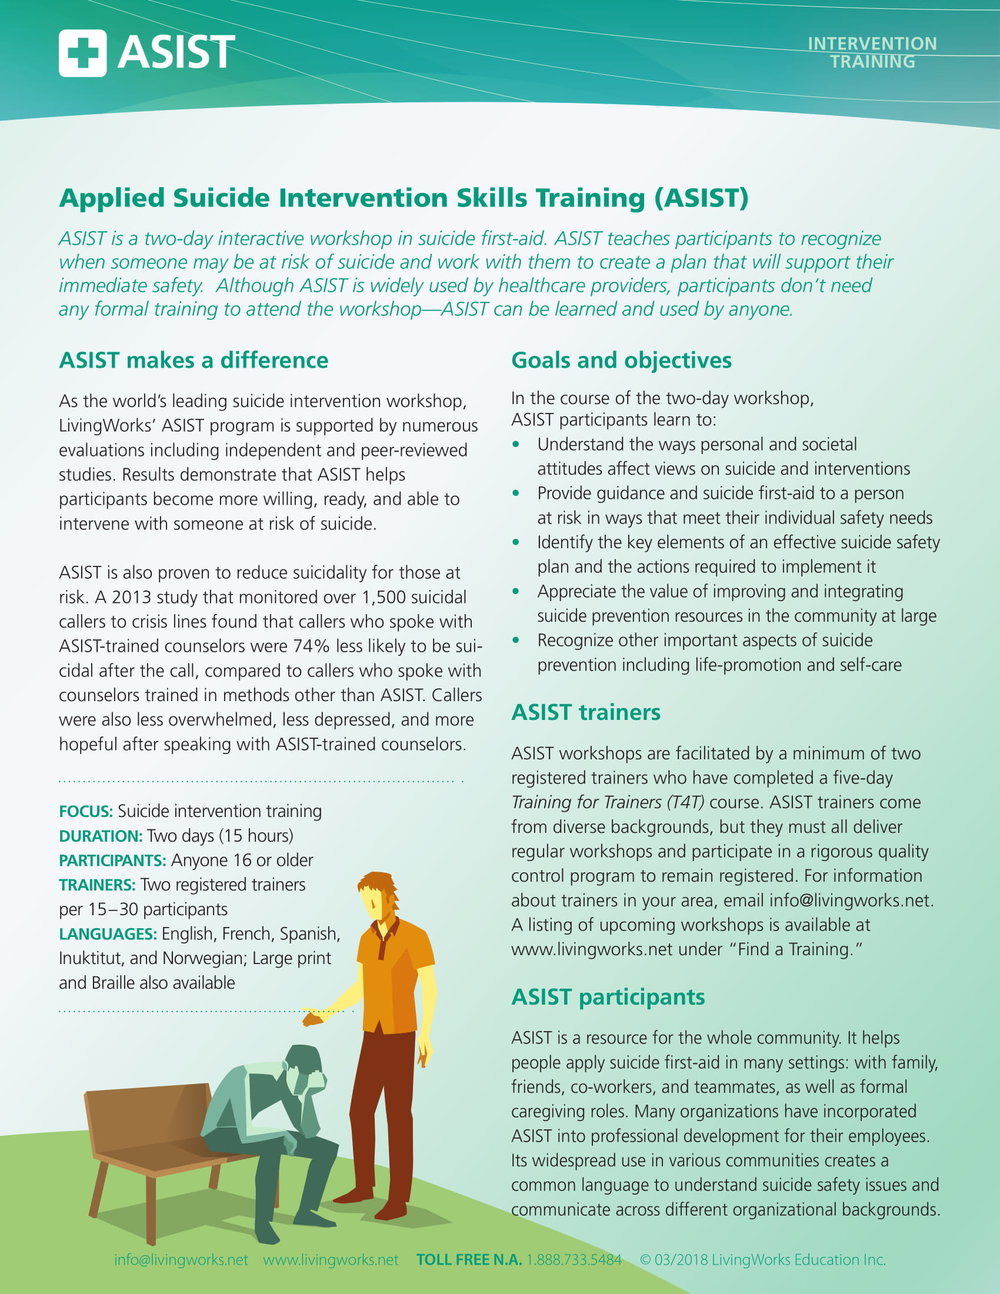 ASIST Training Information